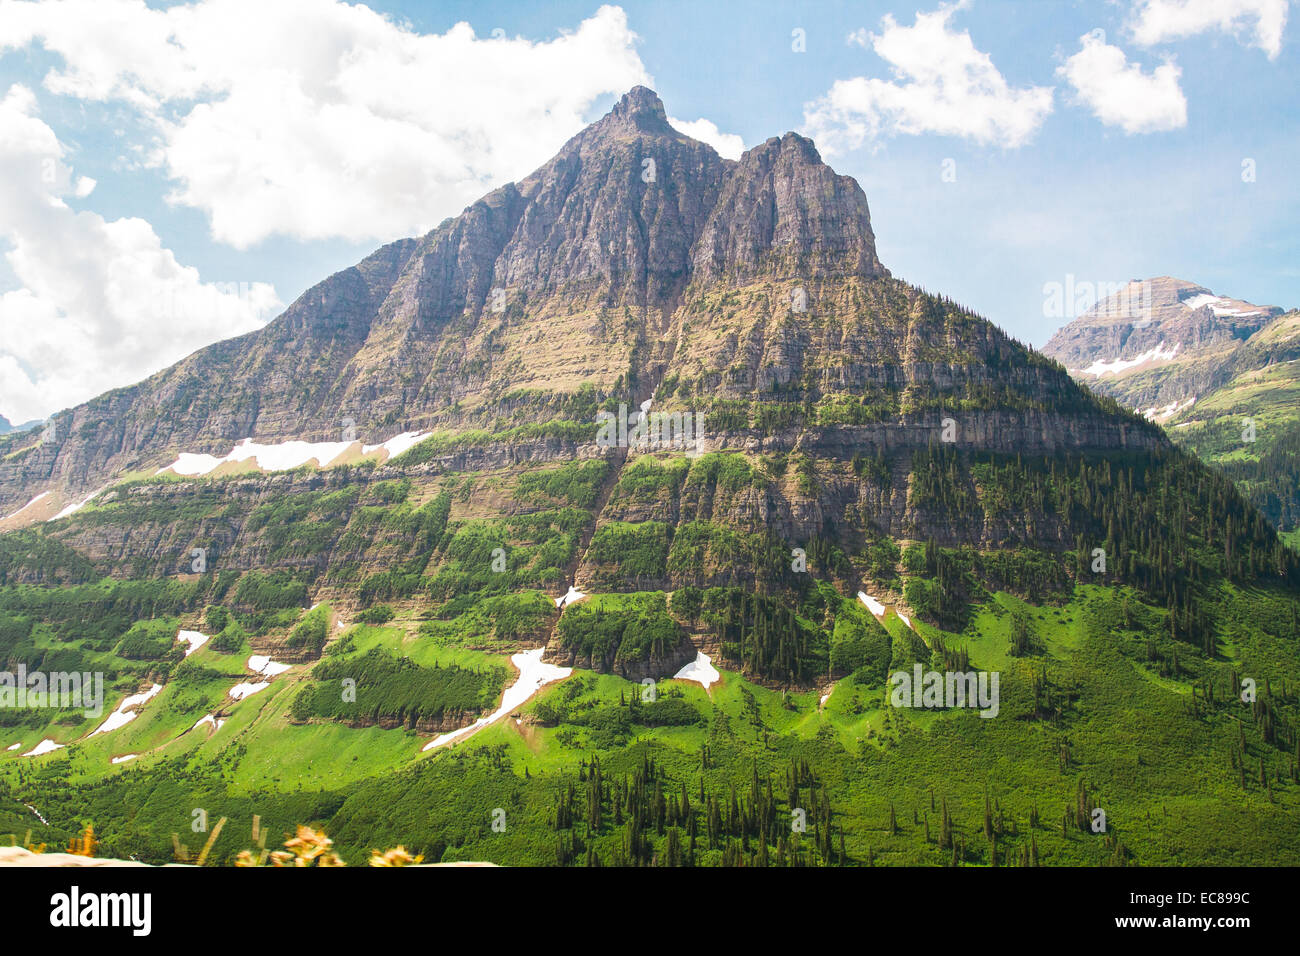 Epic mountain scenery in Glacier National Park, Montana - Stock Image